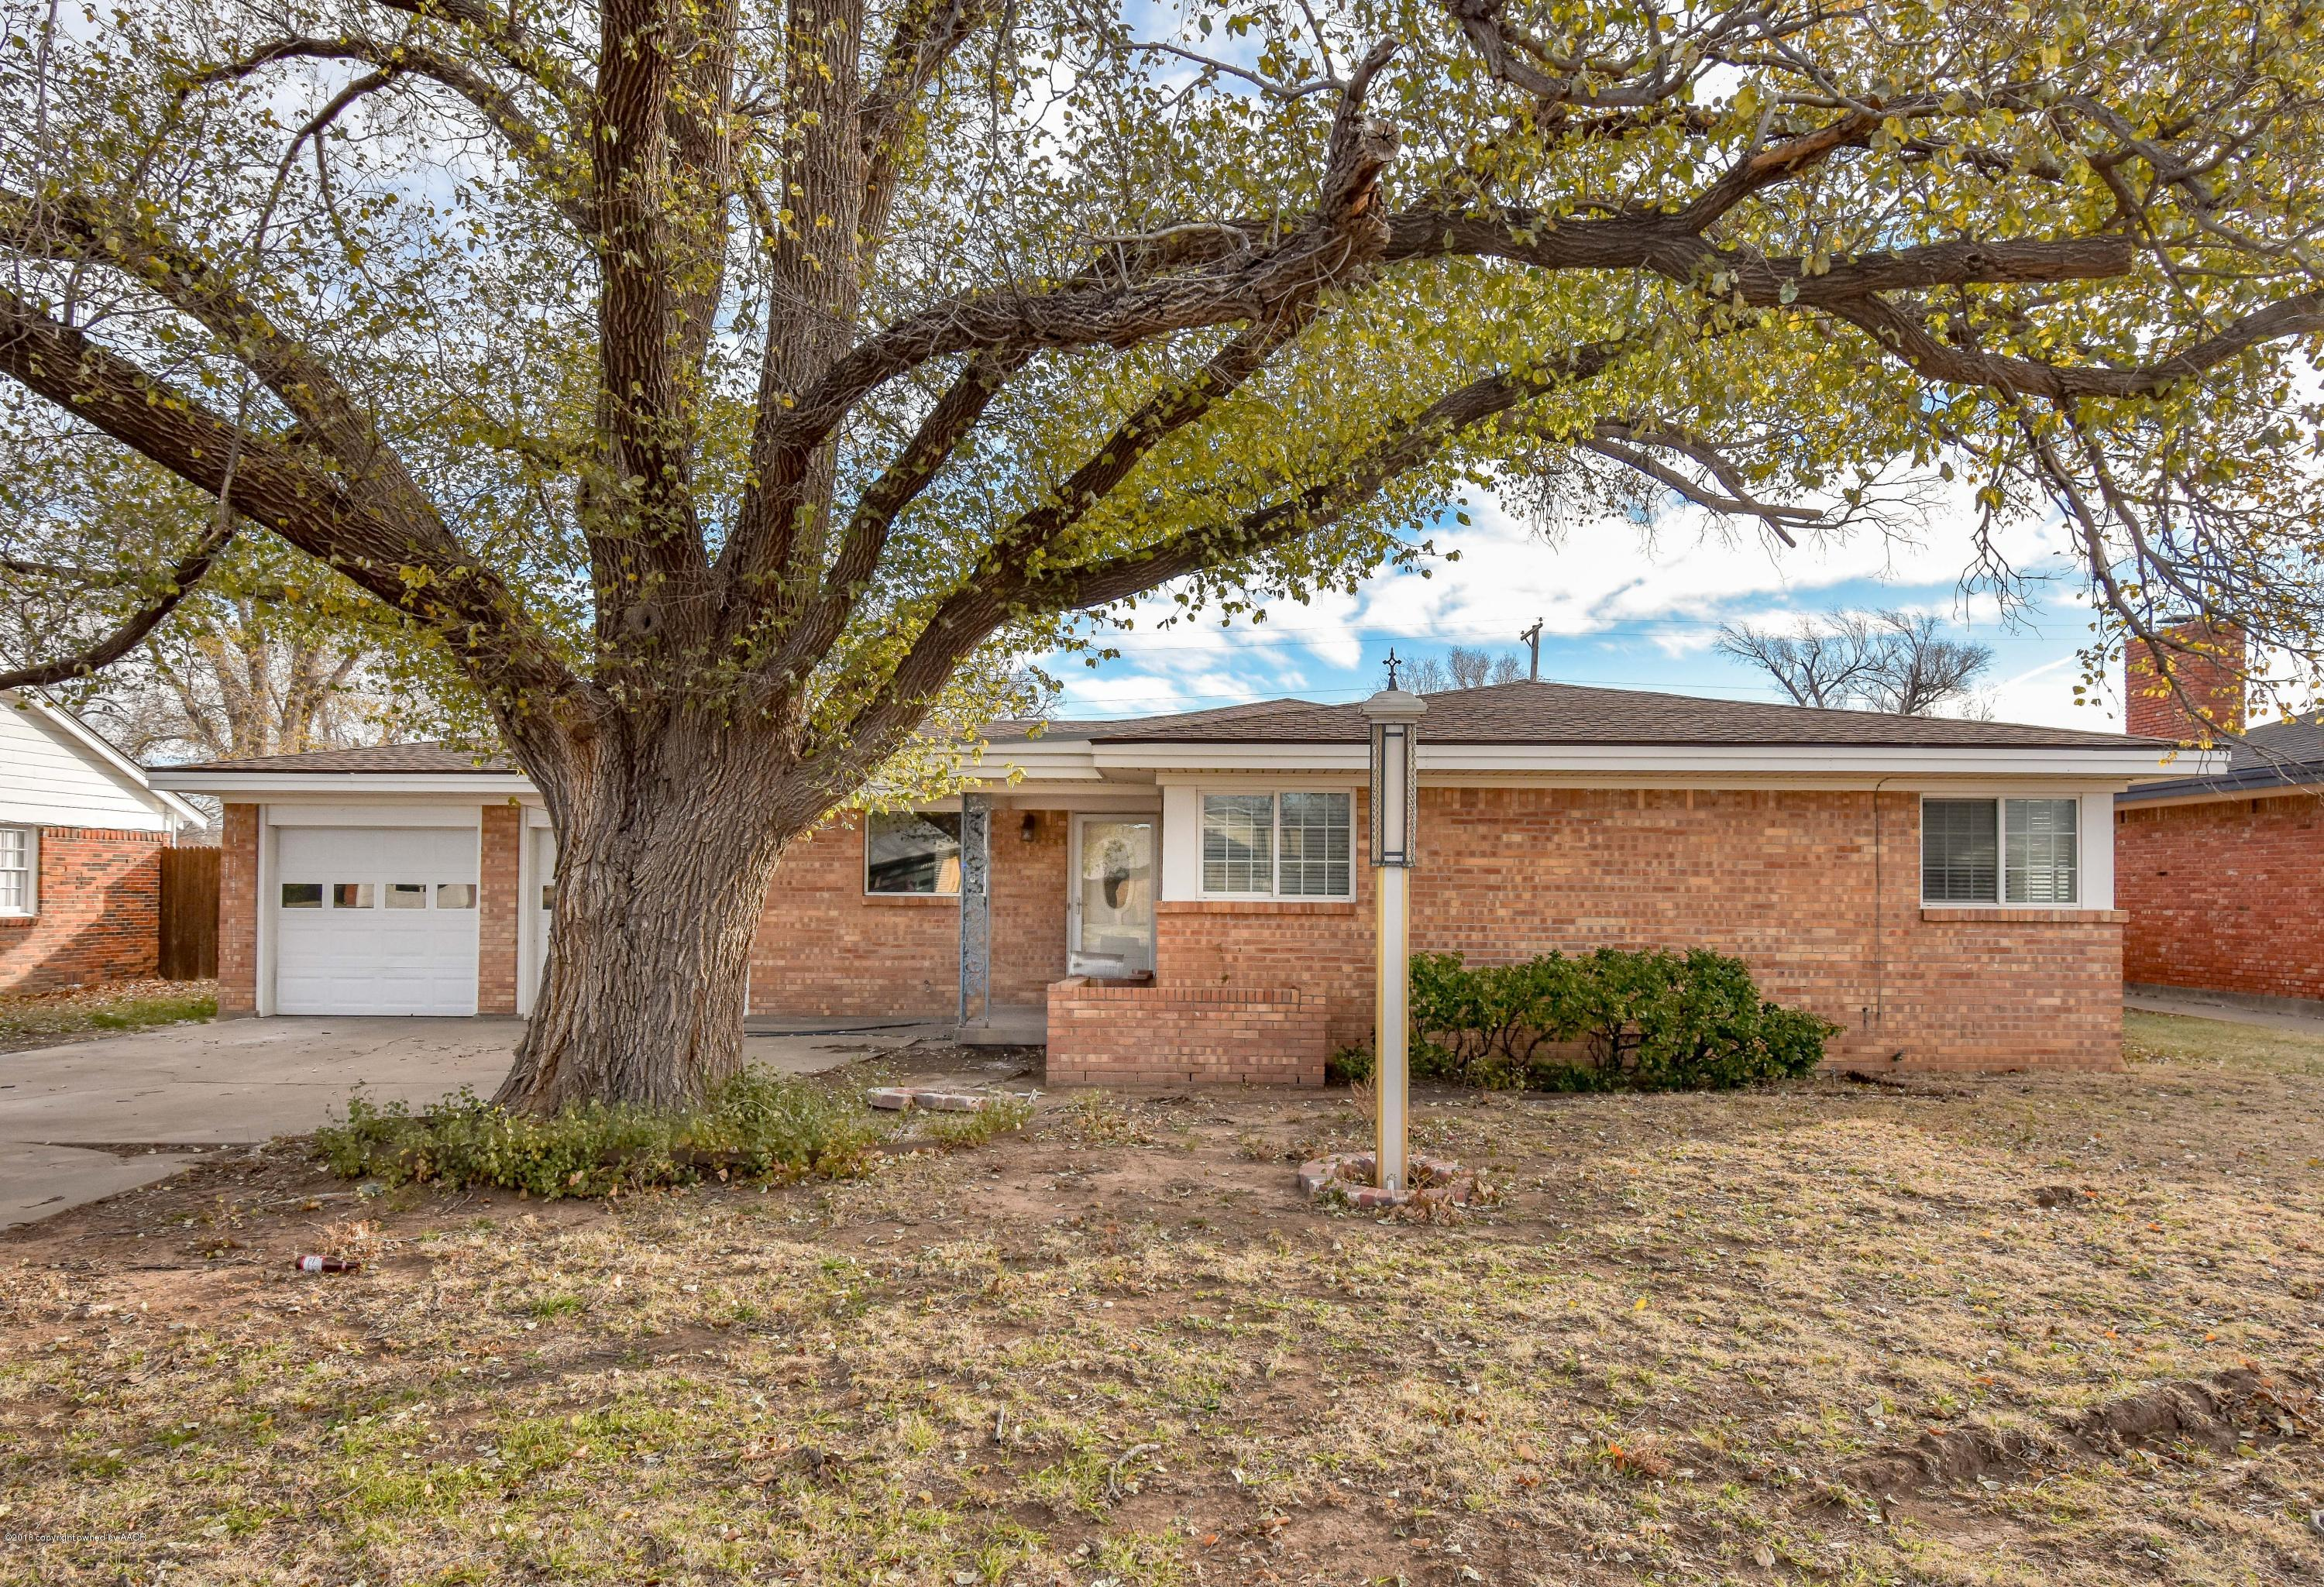 3409 PARAMOUNT BLVD, Amarillo in Randall County, TX 79109 Home for Sale